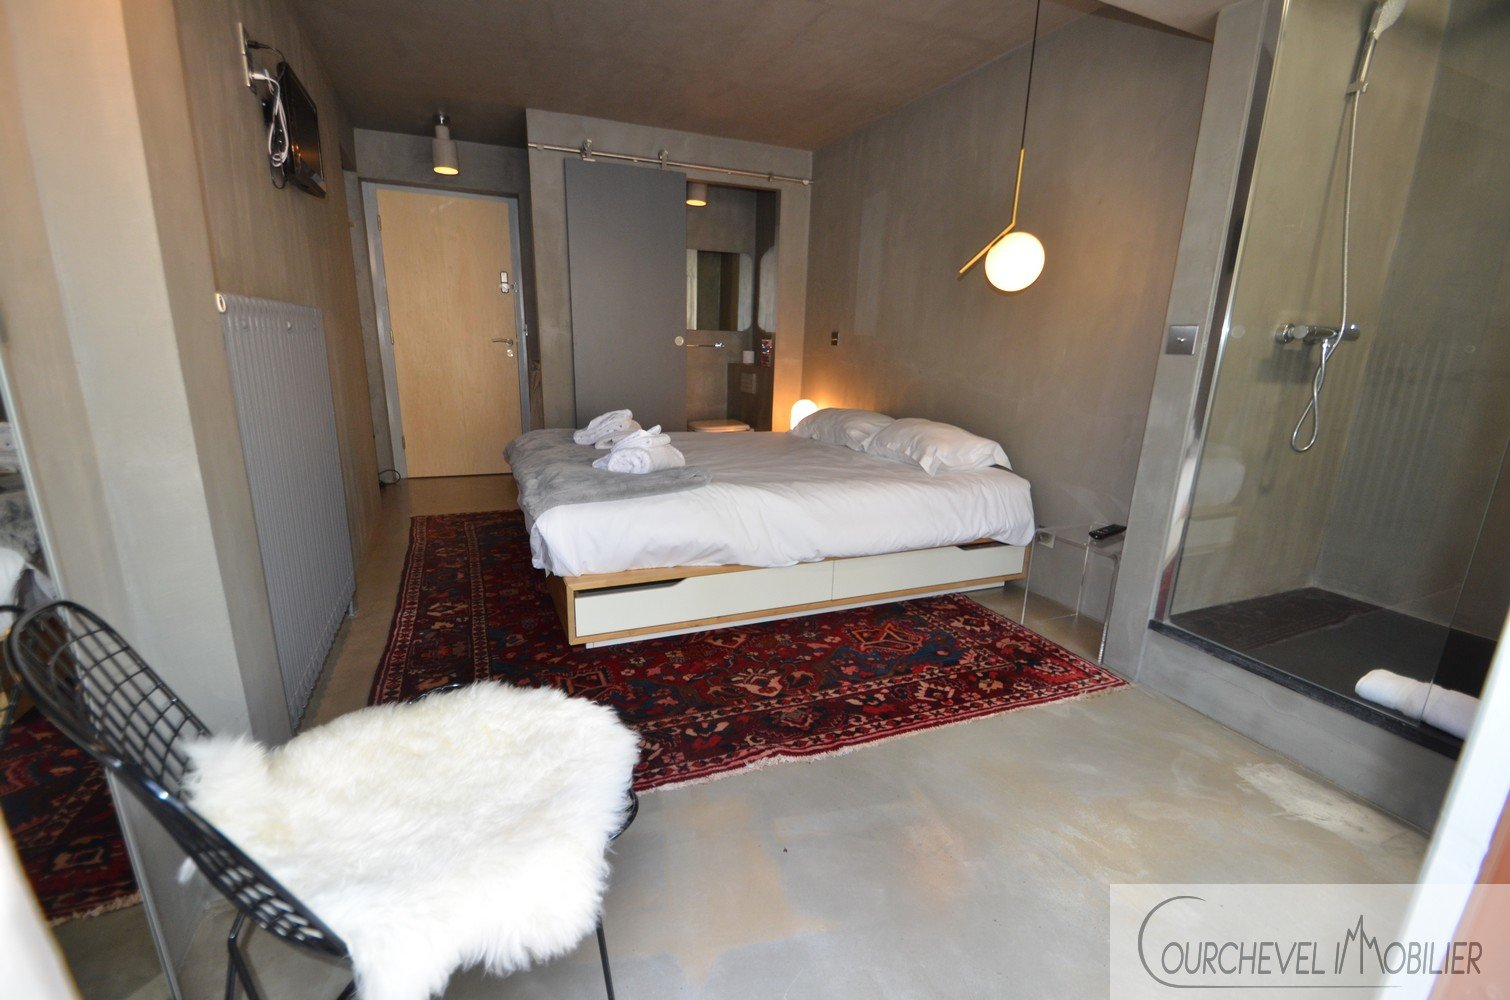 Huur Appartement - Courchevel 1850